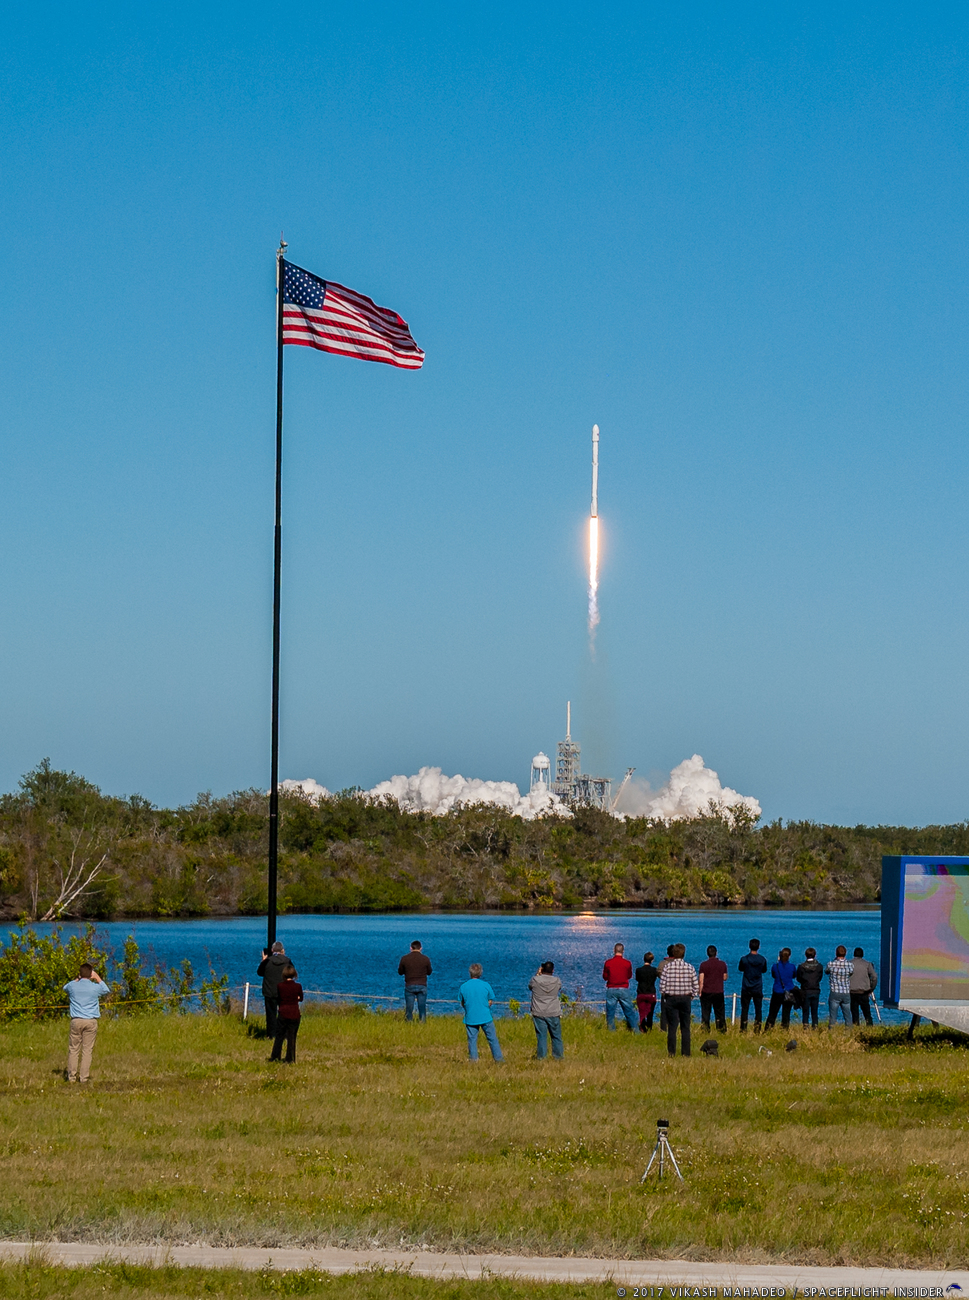 This afternoon's mission saw a new Falcon 9 first stage conduct a successful landing on the Of Course I Still Love You Autonomous Spaceport Drone Ship (ASDS). Photo Credit: Vikash Mahadeo / SpaceFlight Insider